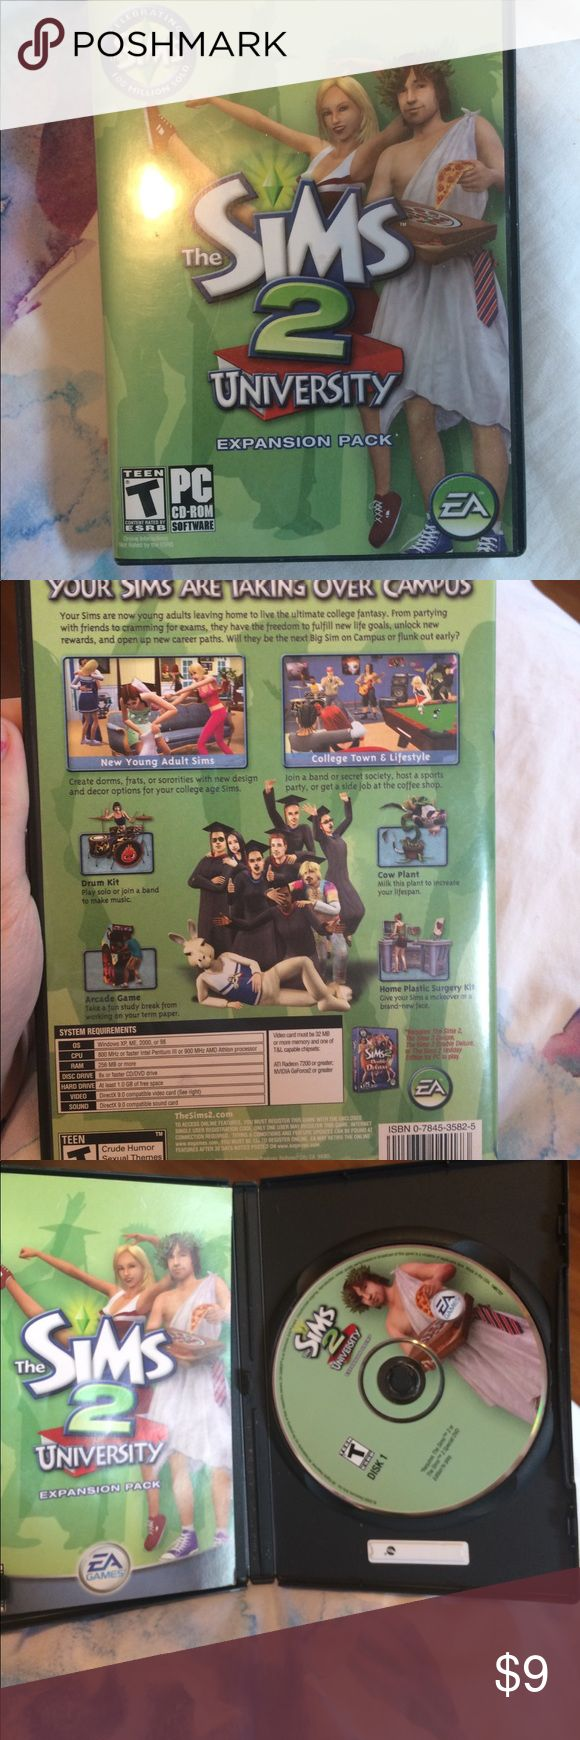 The Sims 2 University Expansion Pack In good condition Other